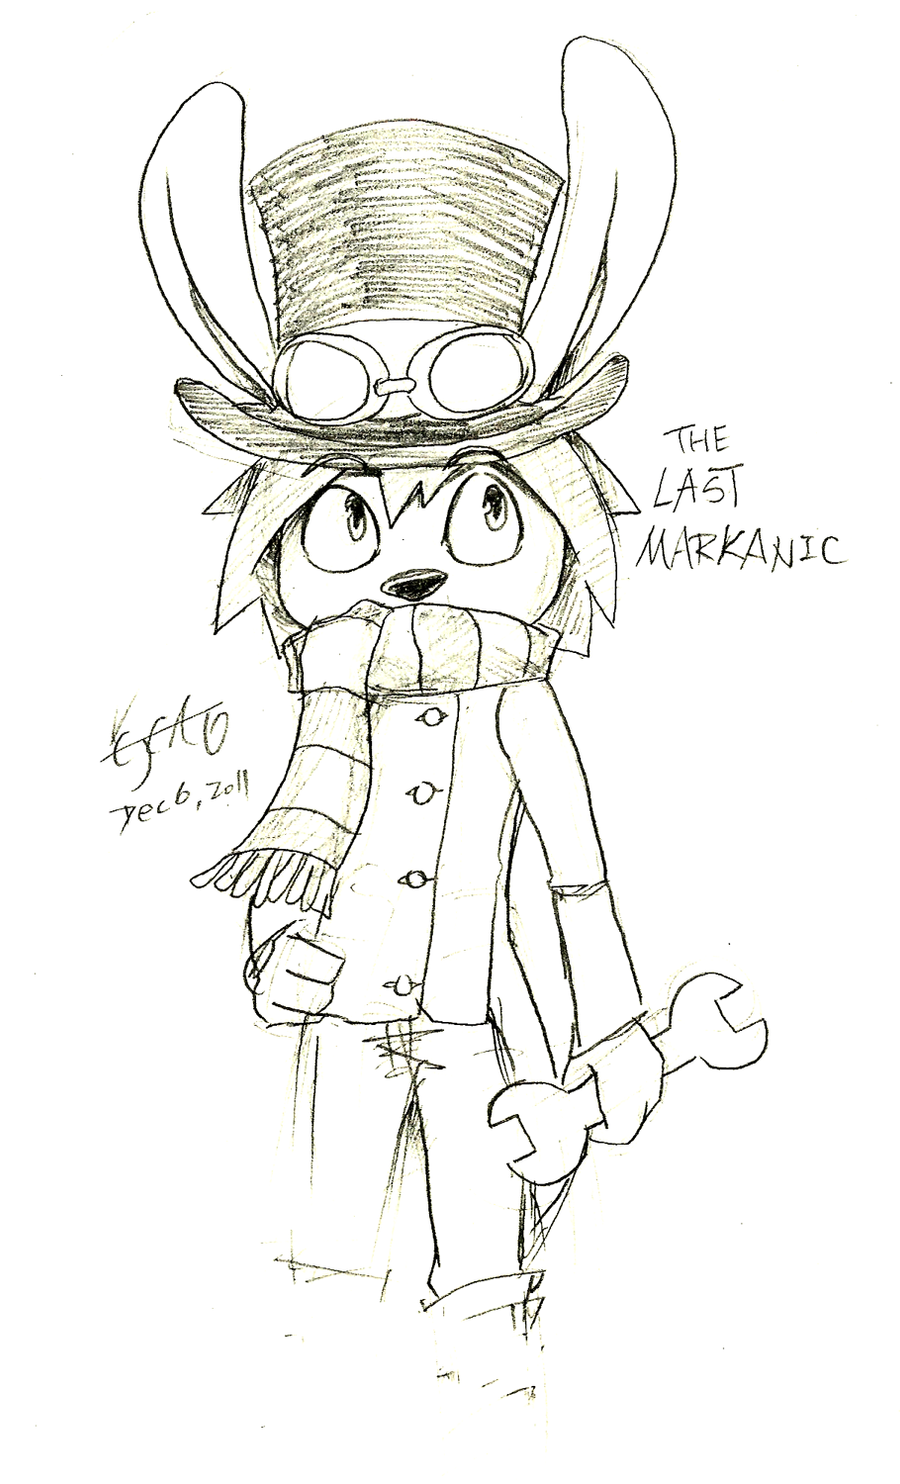 The Last Markanic lineart by cjcat2266